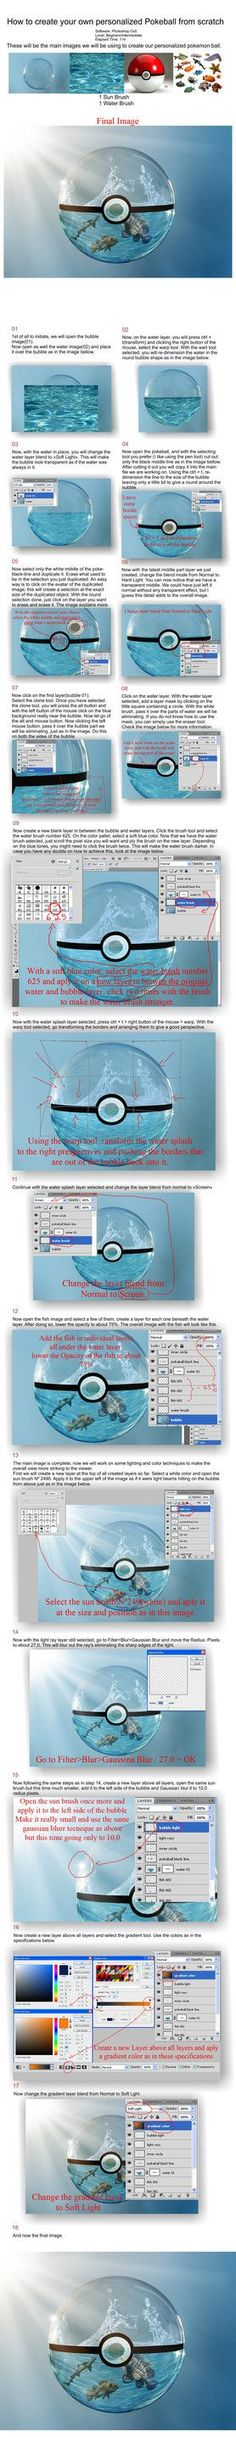 Learn How to create your own personalized real life pokeball. In this tutorial I will teach you how to create the pokeball out of a bubble and water filling. Here is one pokeball image I created pr...